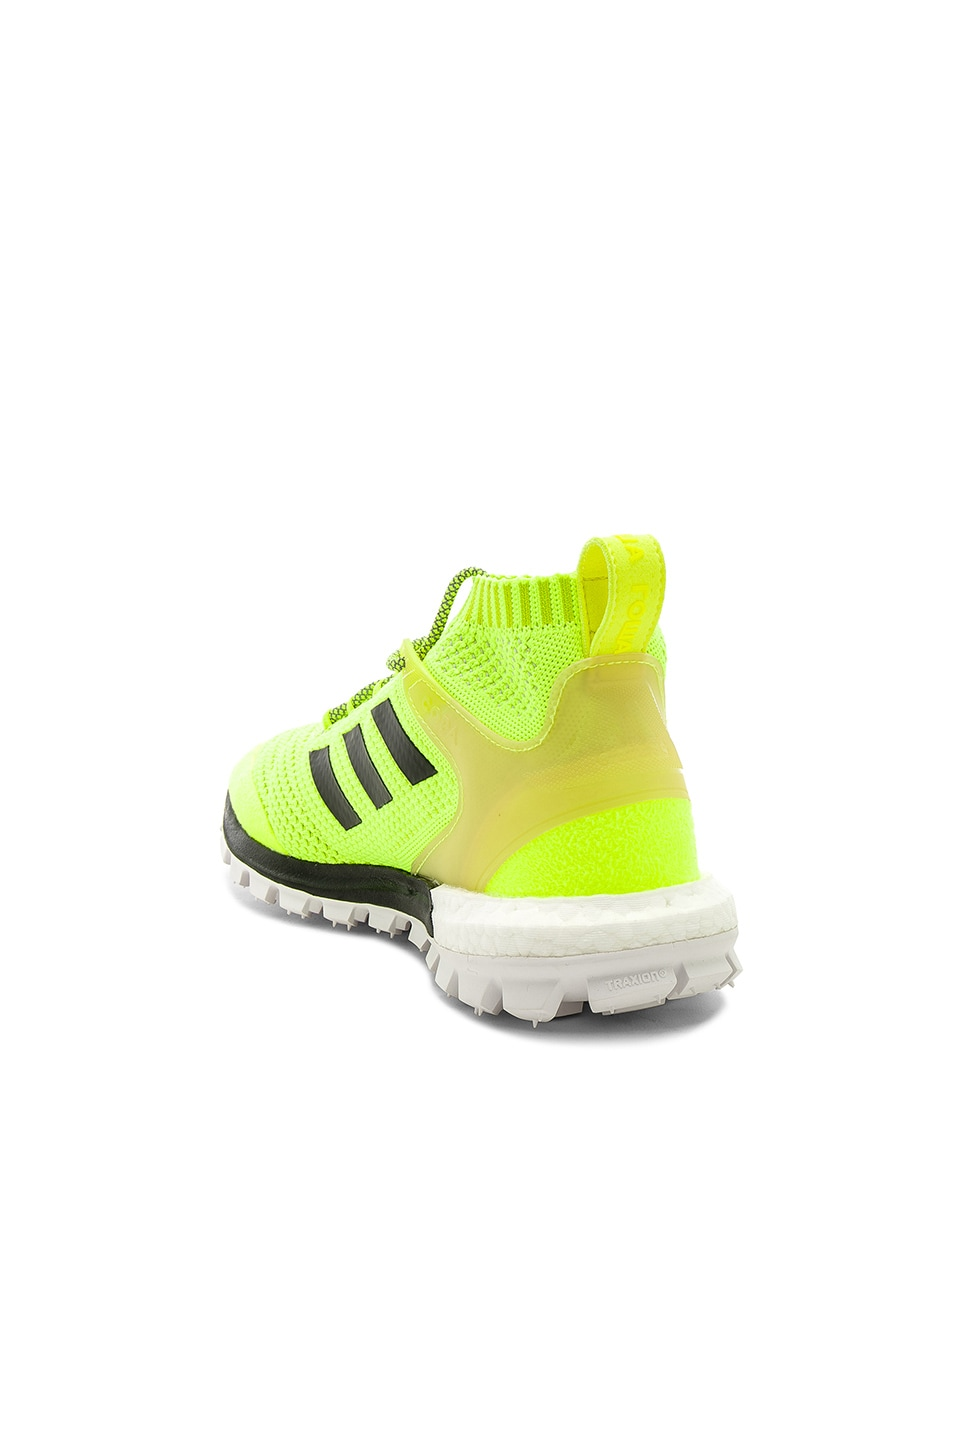 Gosha Rubchinskiy Yellow adidas Originals Edition Copa Mid PK Sneakers